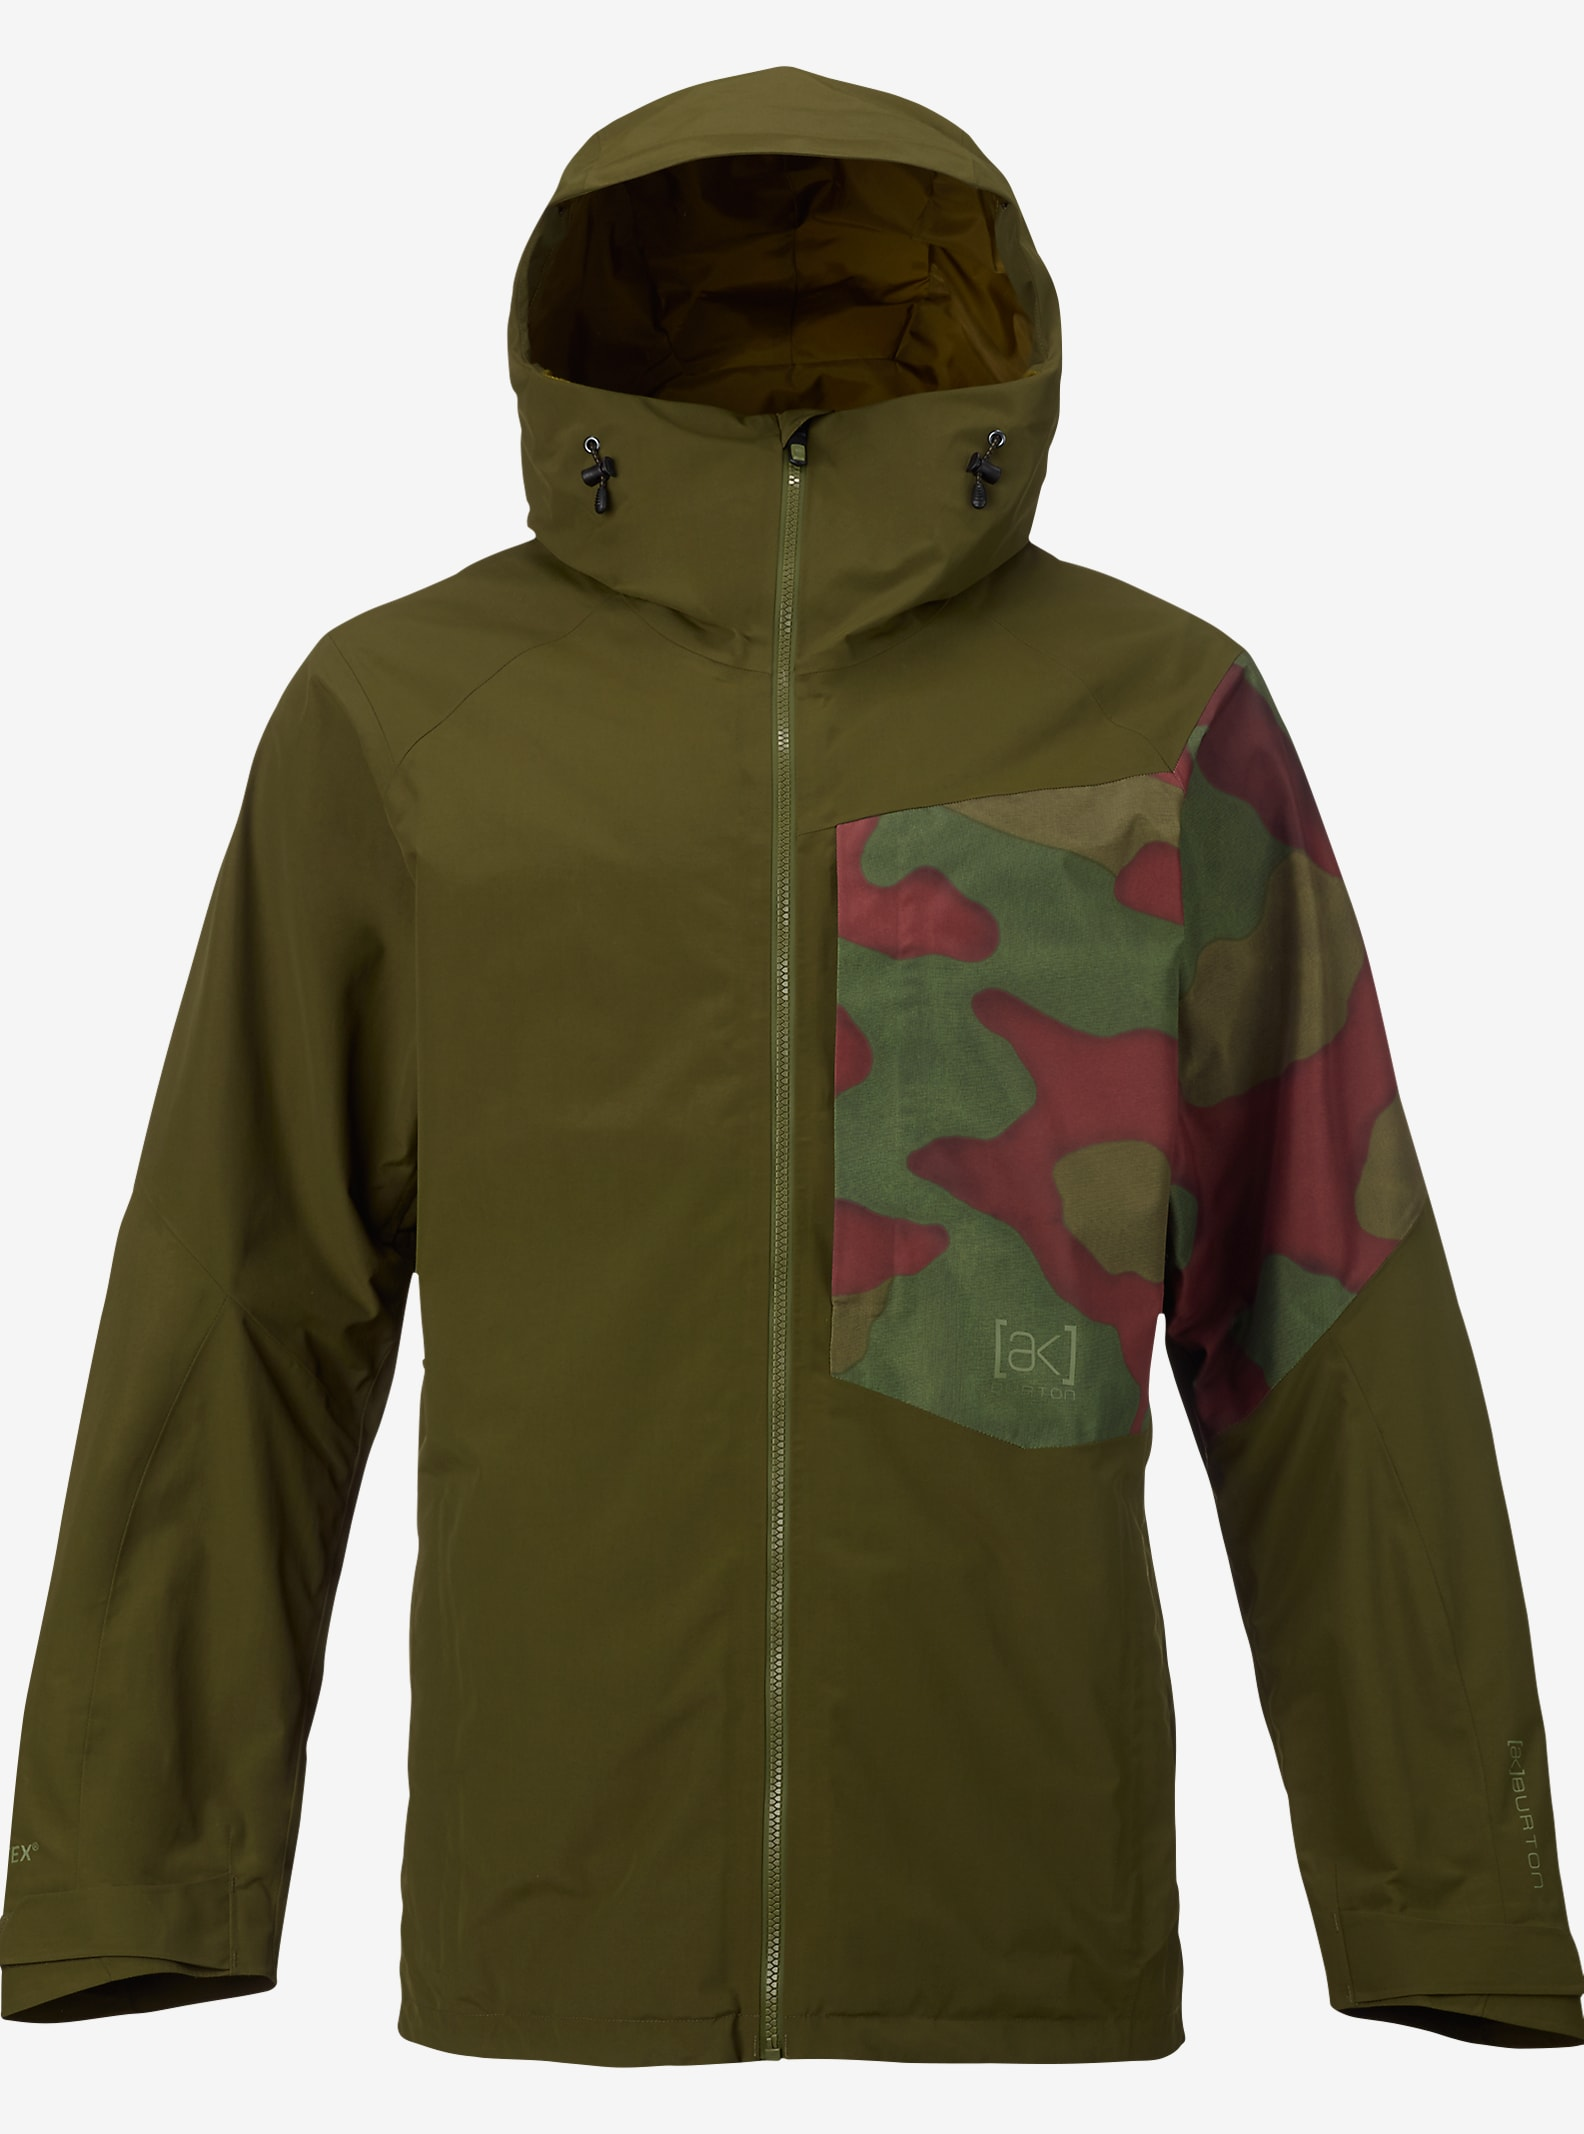 Burton - Manteau [ak] 2L Bloom affichage en Jungle / Hombre Camo